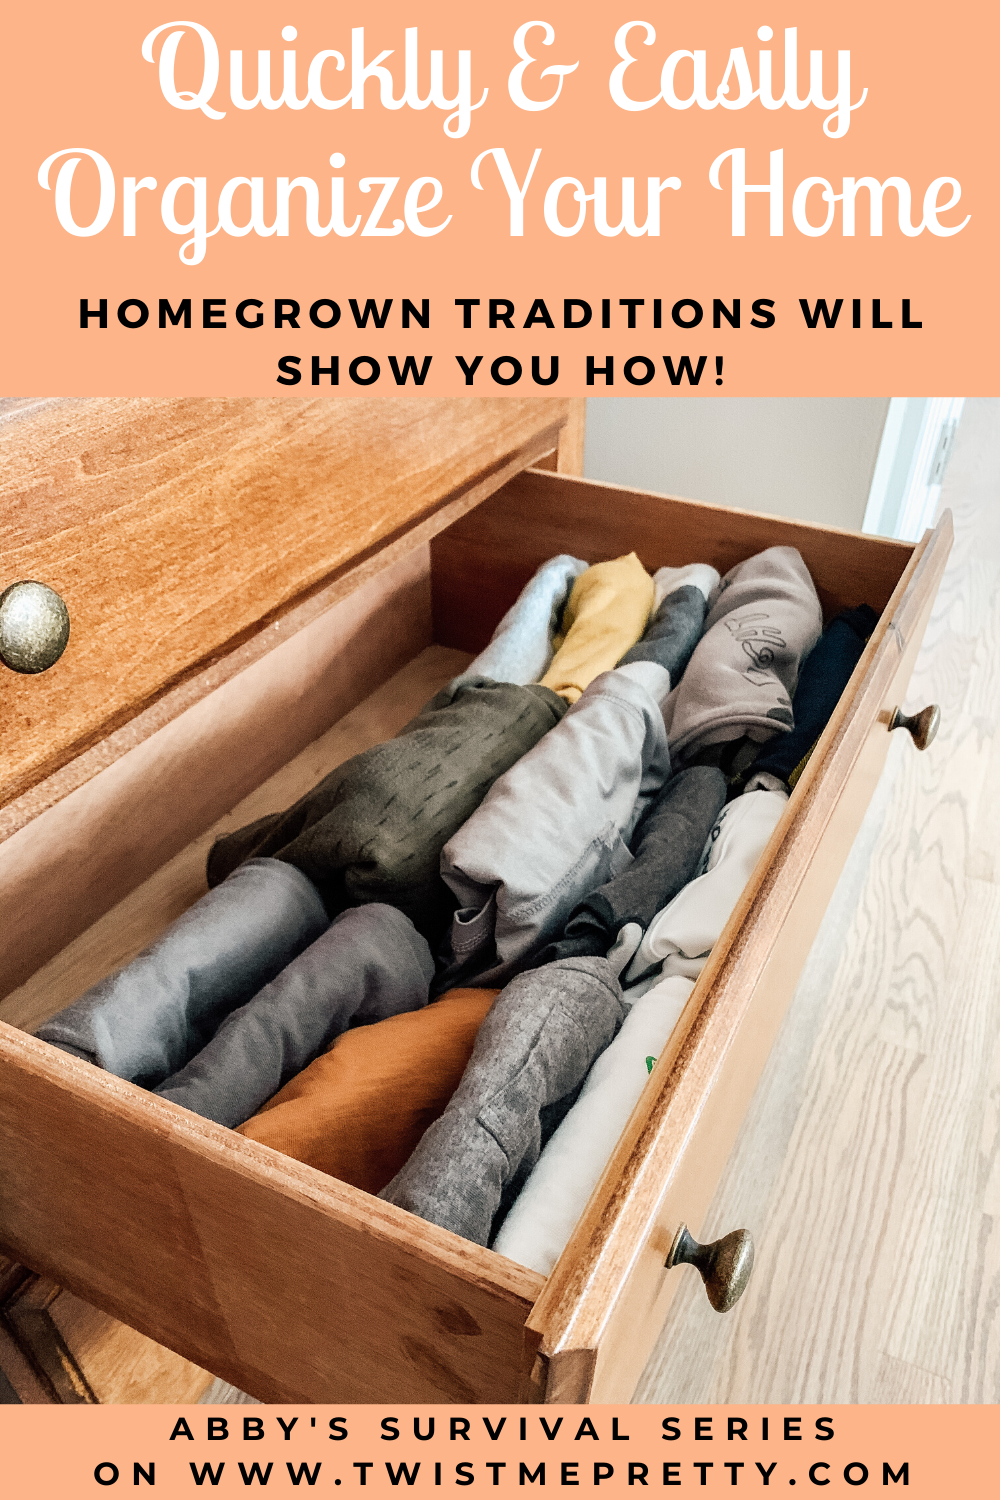 Quickly & Easily Organize Your Home by Homegrown Traditions. www.TwistMePretty.com